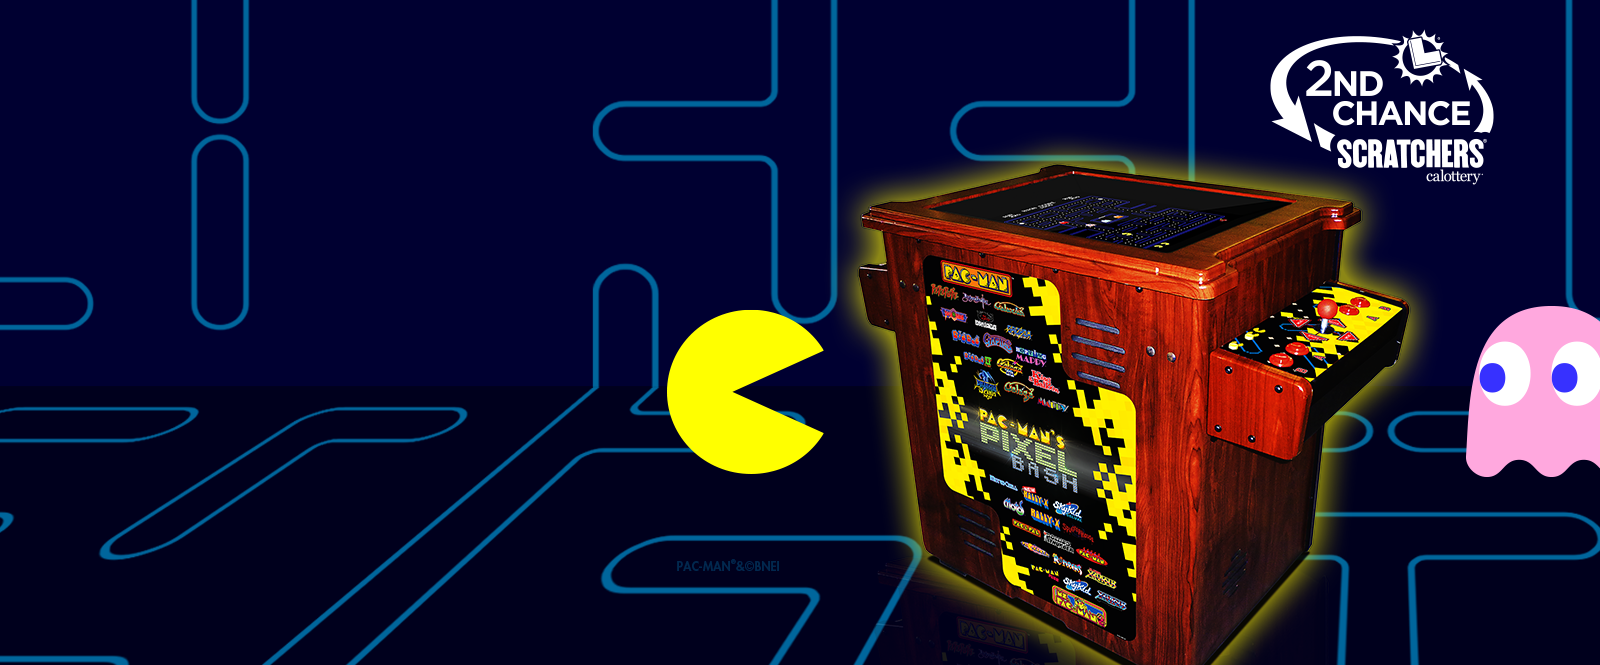 PAC-MAN 2nd Chance Image